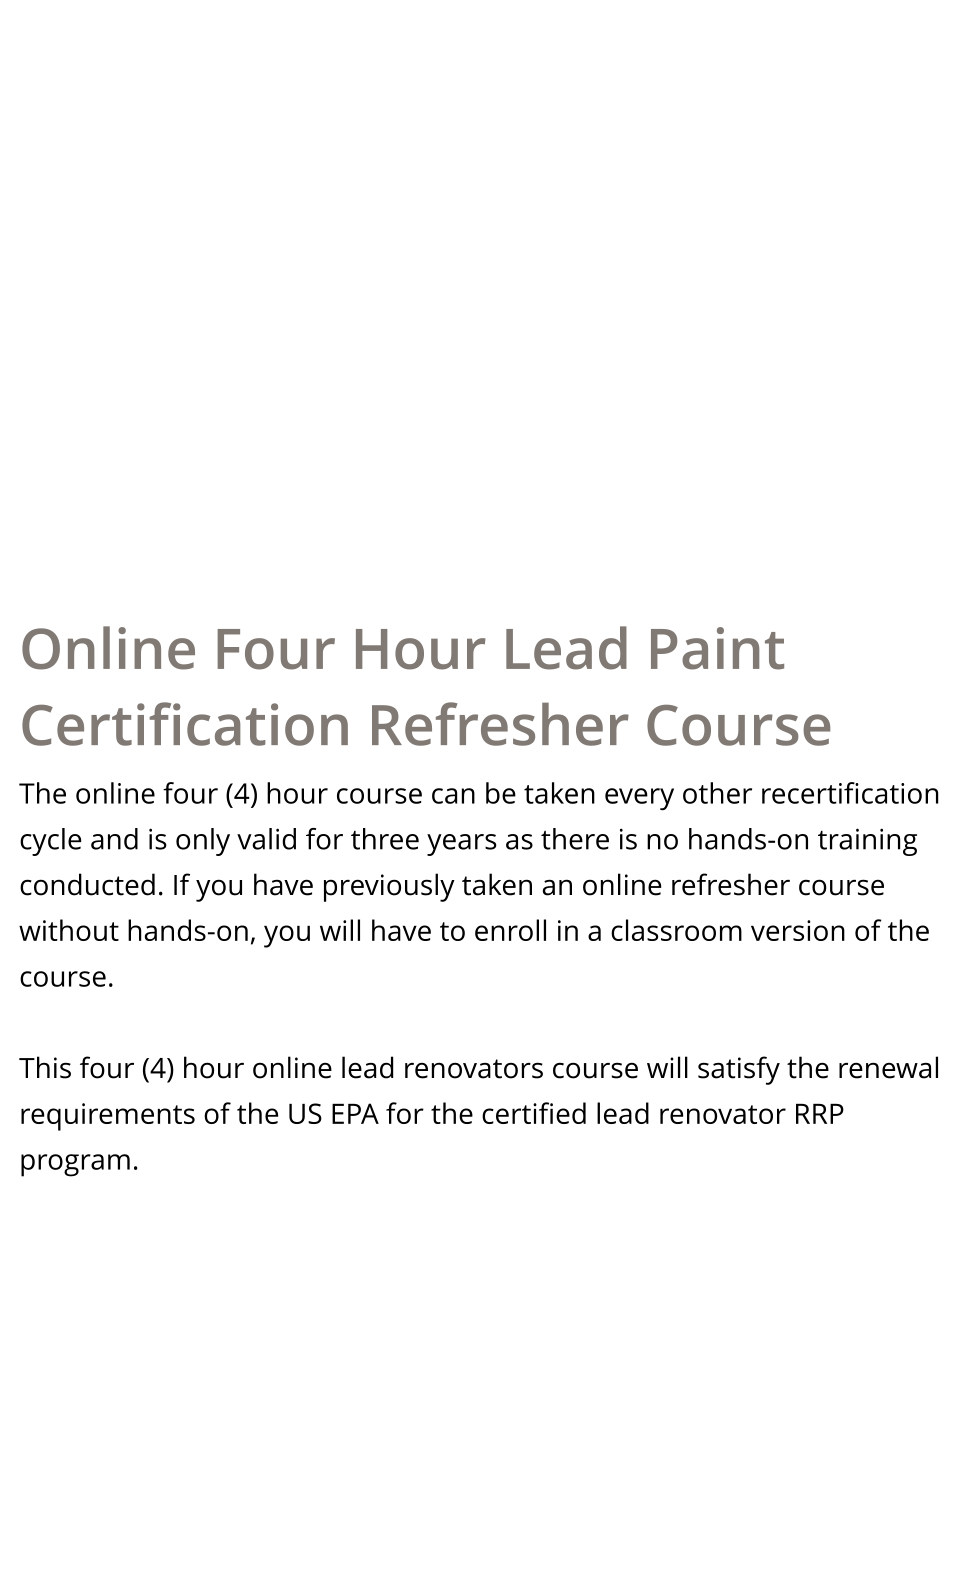 Michigan Epa Lead Paint Rrp Certification Refresher Online